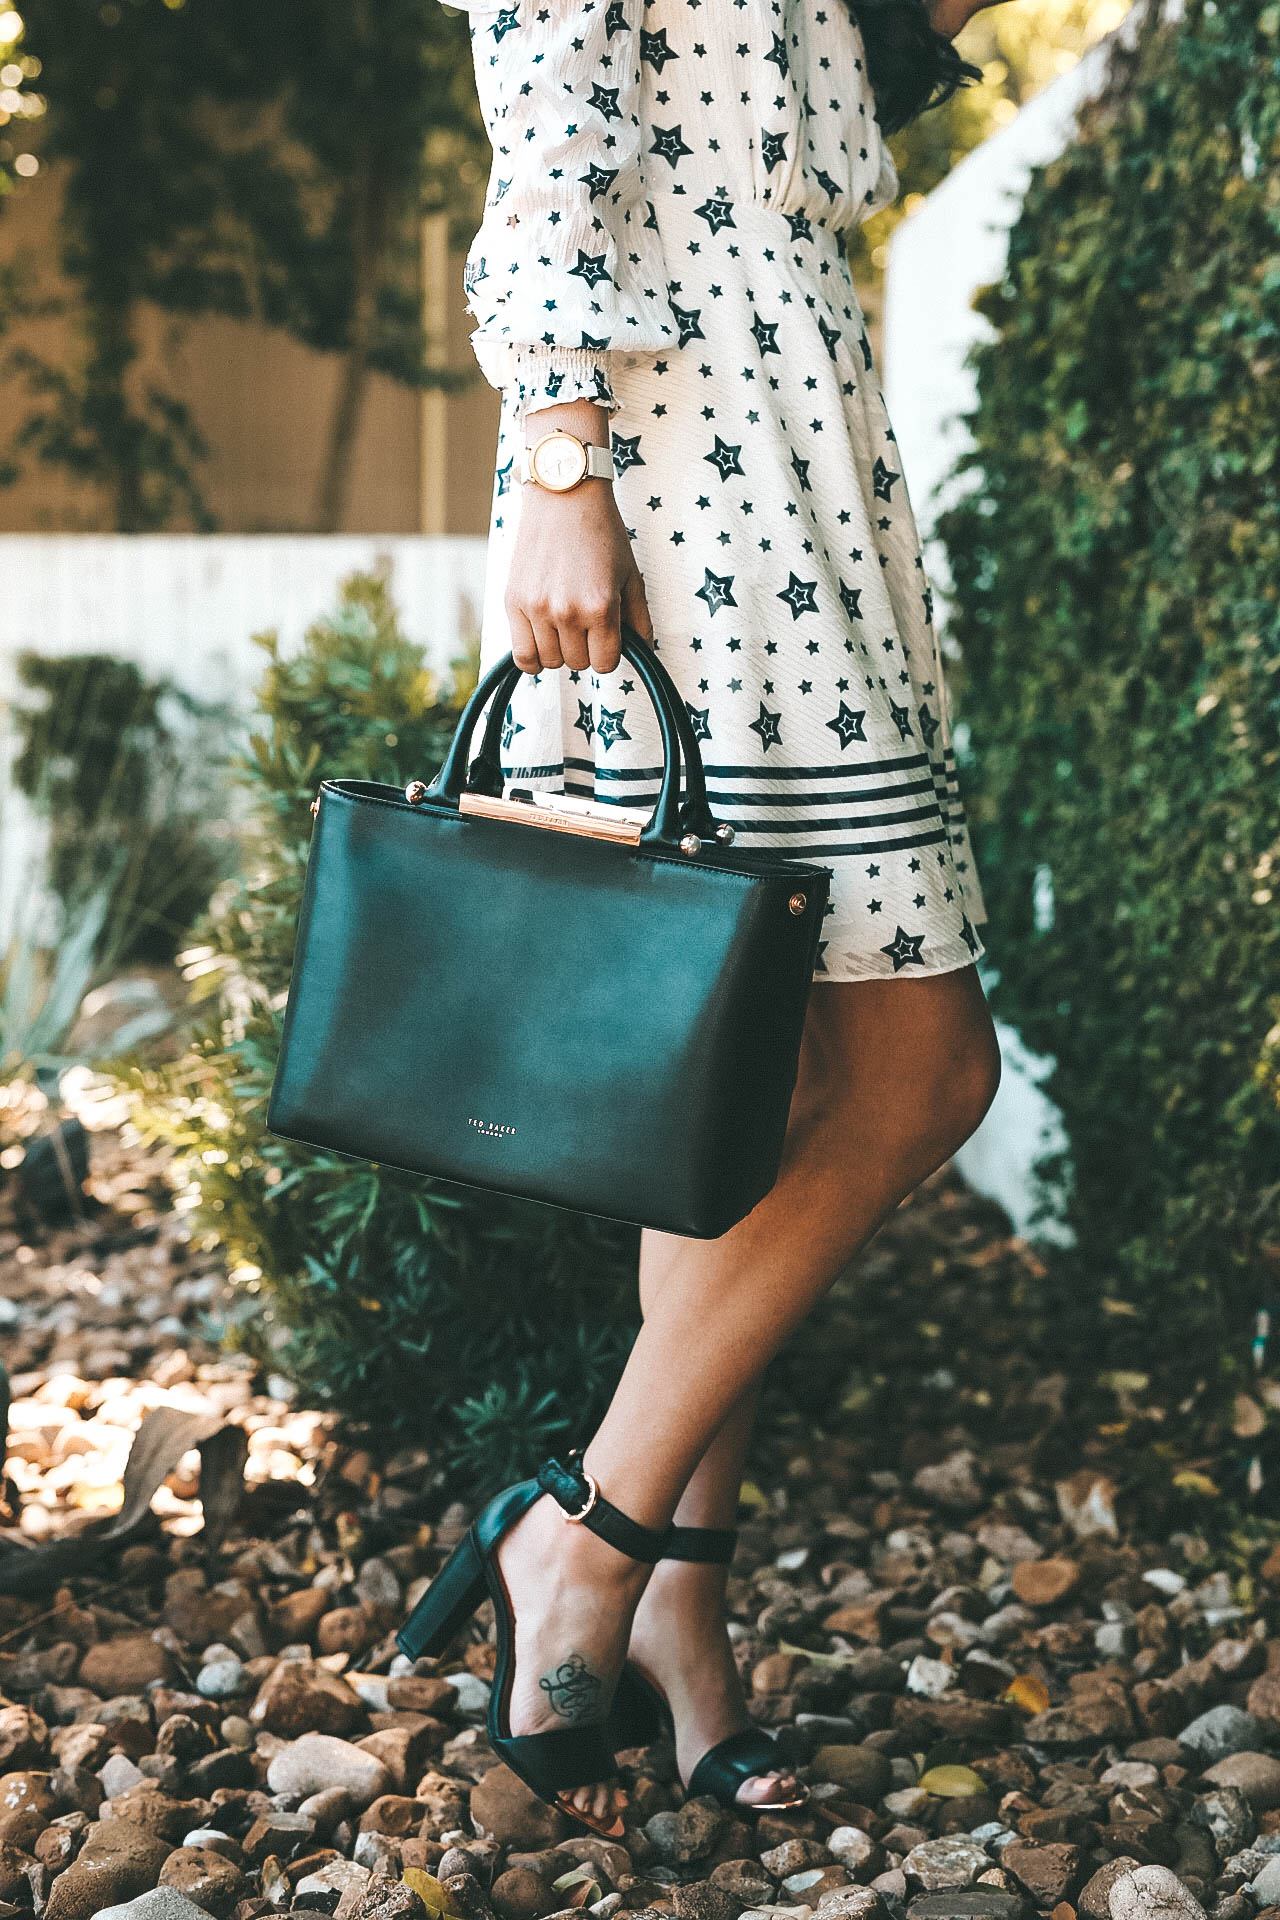 DTKAustin talks Spring looks and outfits with one of her favorite designers, Ted Baker. Star print dress, leather tote and leather sandals all Ted Baker. || Dressed to Kill #springoutfit #tedbaker #printdress #leathertote #dresses #fashion #style - Ted Baker Dress styled by popular Austin fashion blogger Dressed to Kill